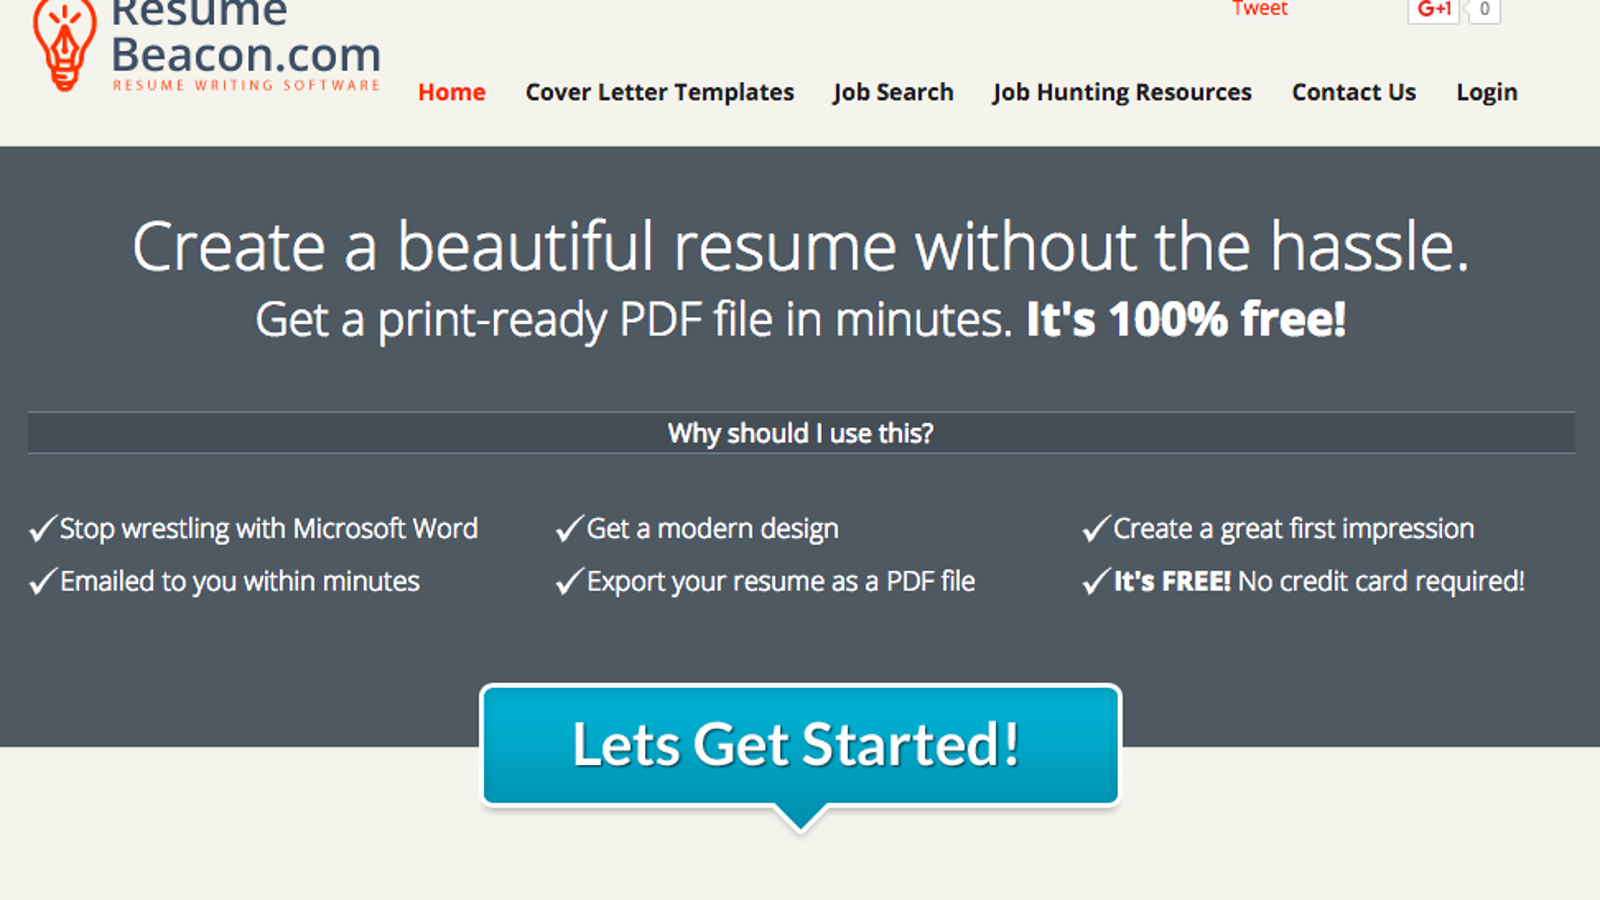 Resume Beacon Is A Simple Free NonFlashy Online Resume Builder